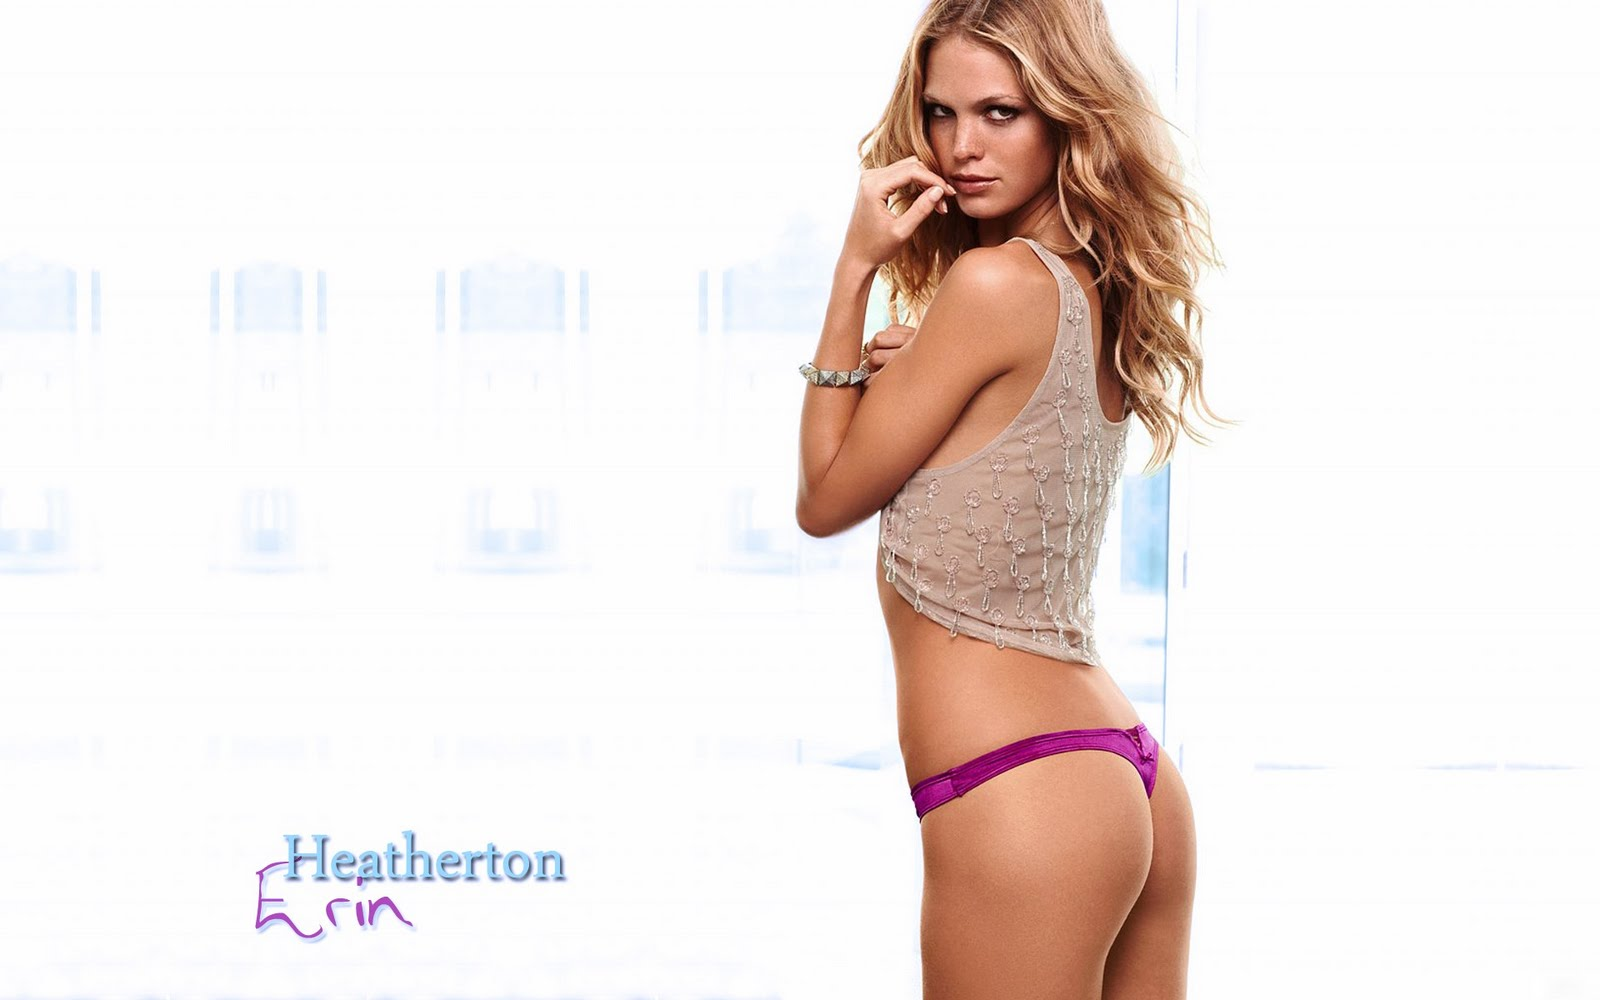 Erin Heatherton Net Worth